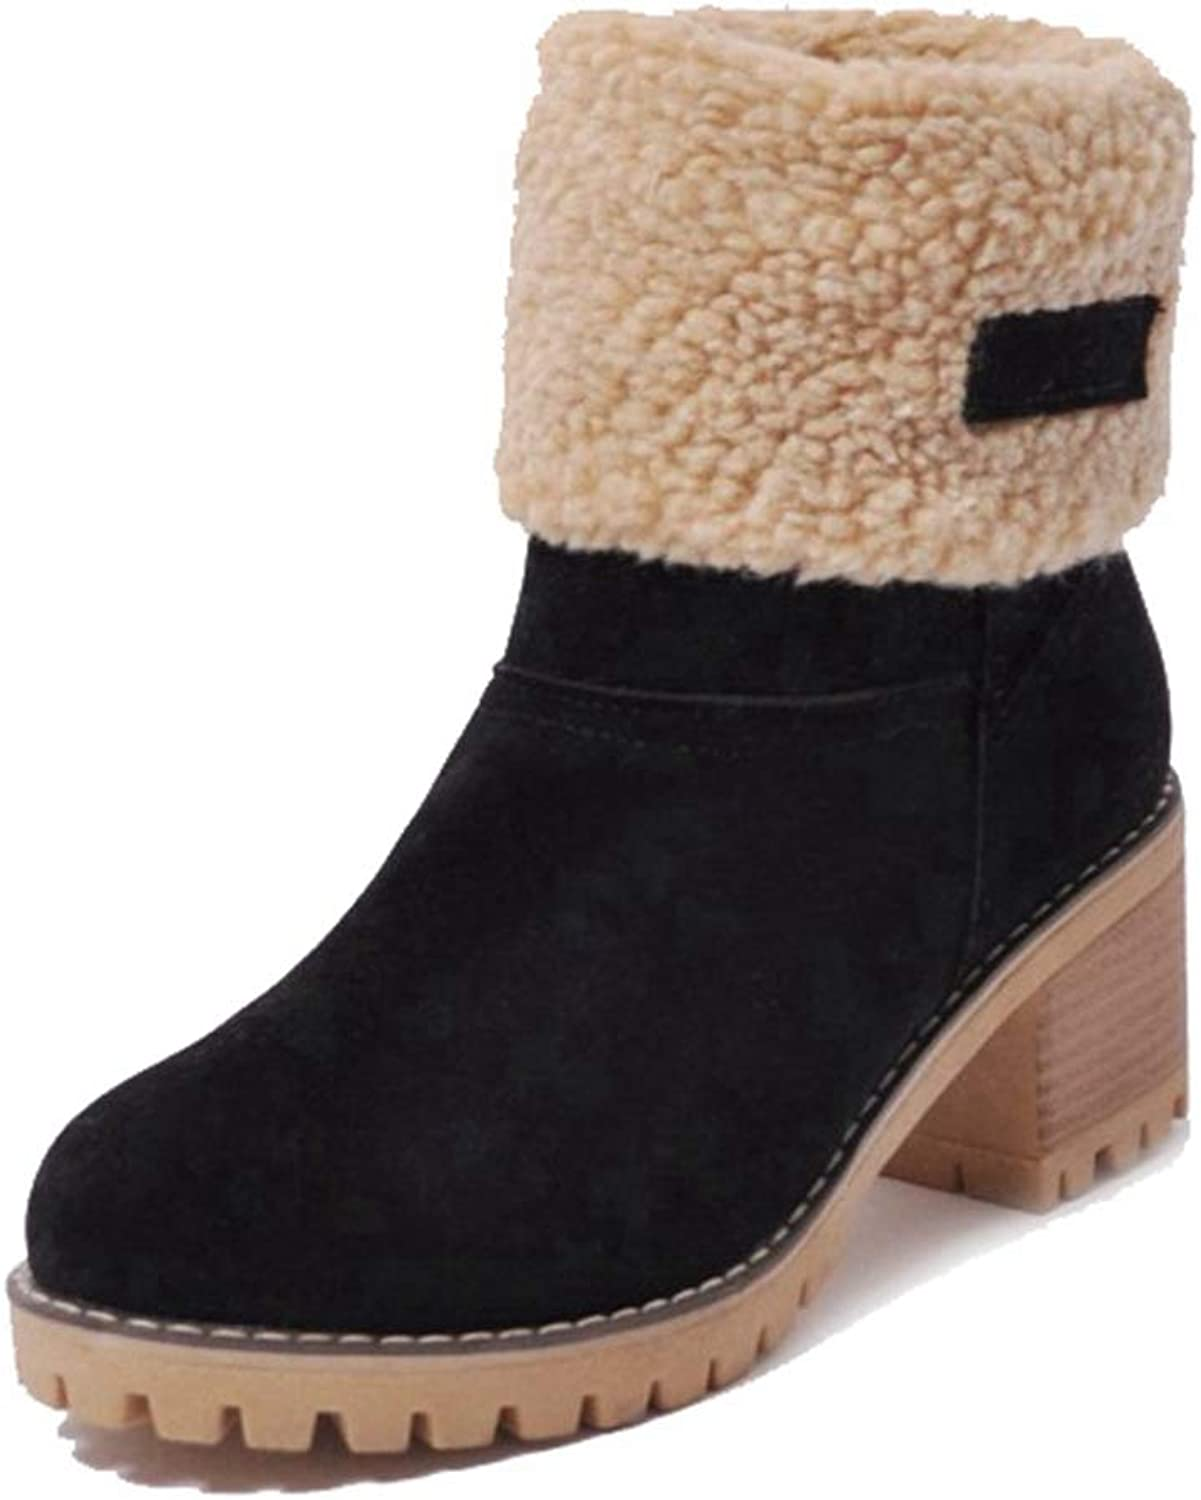 CYBLING Womens Warm Short Boots Suede Chunky Mid Heel Round Toe Pull On Winter Snow Ankle Booties